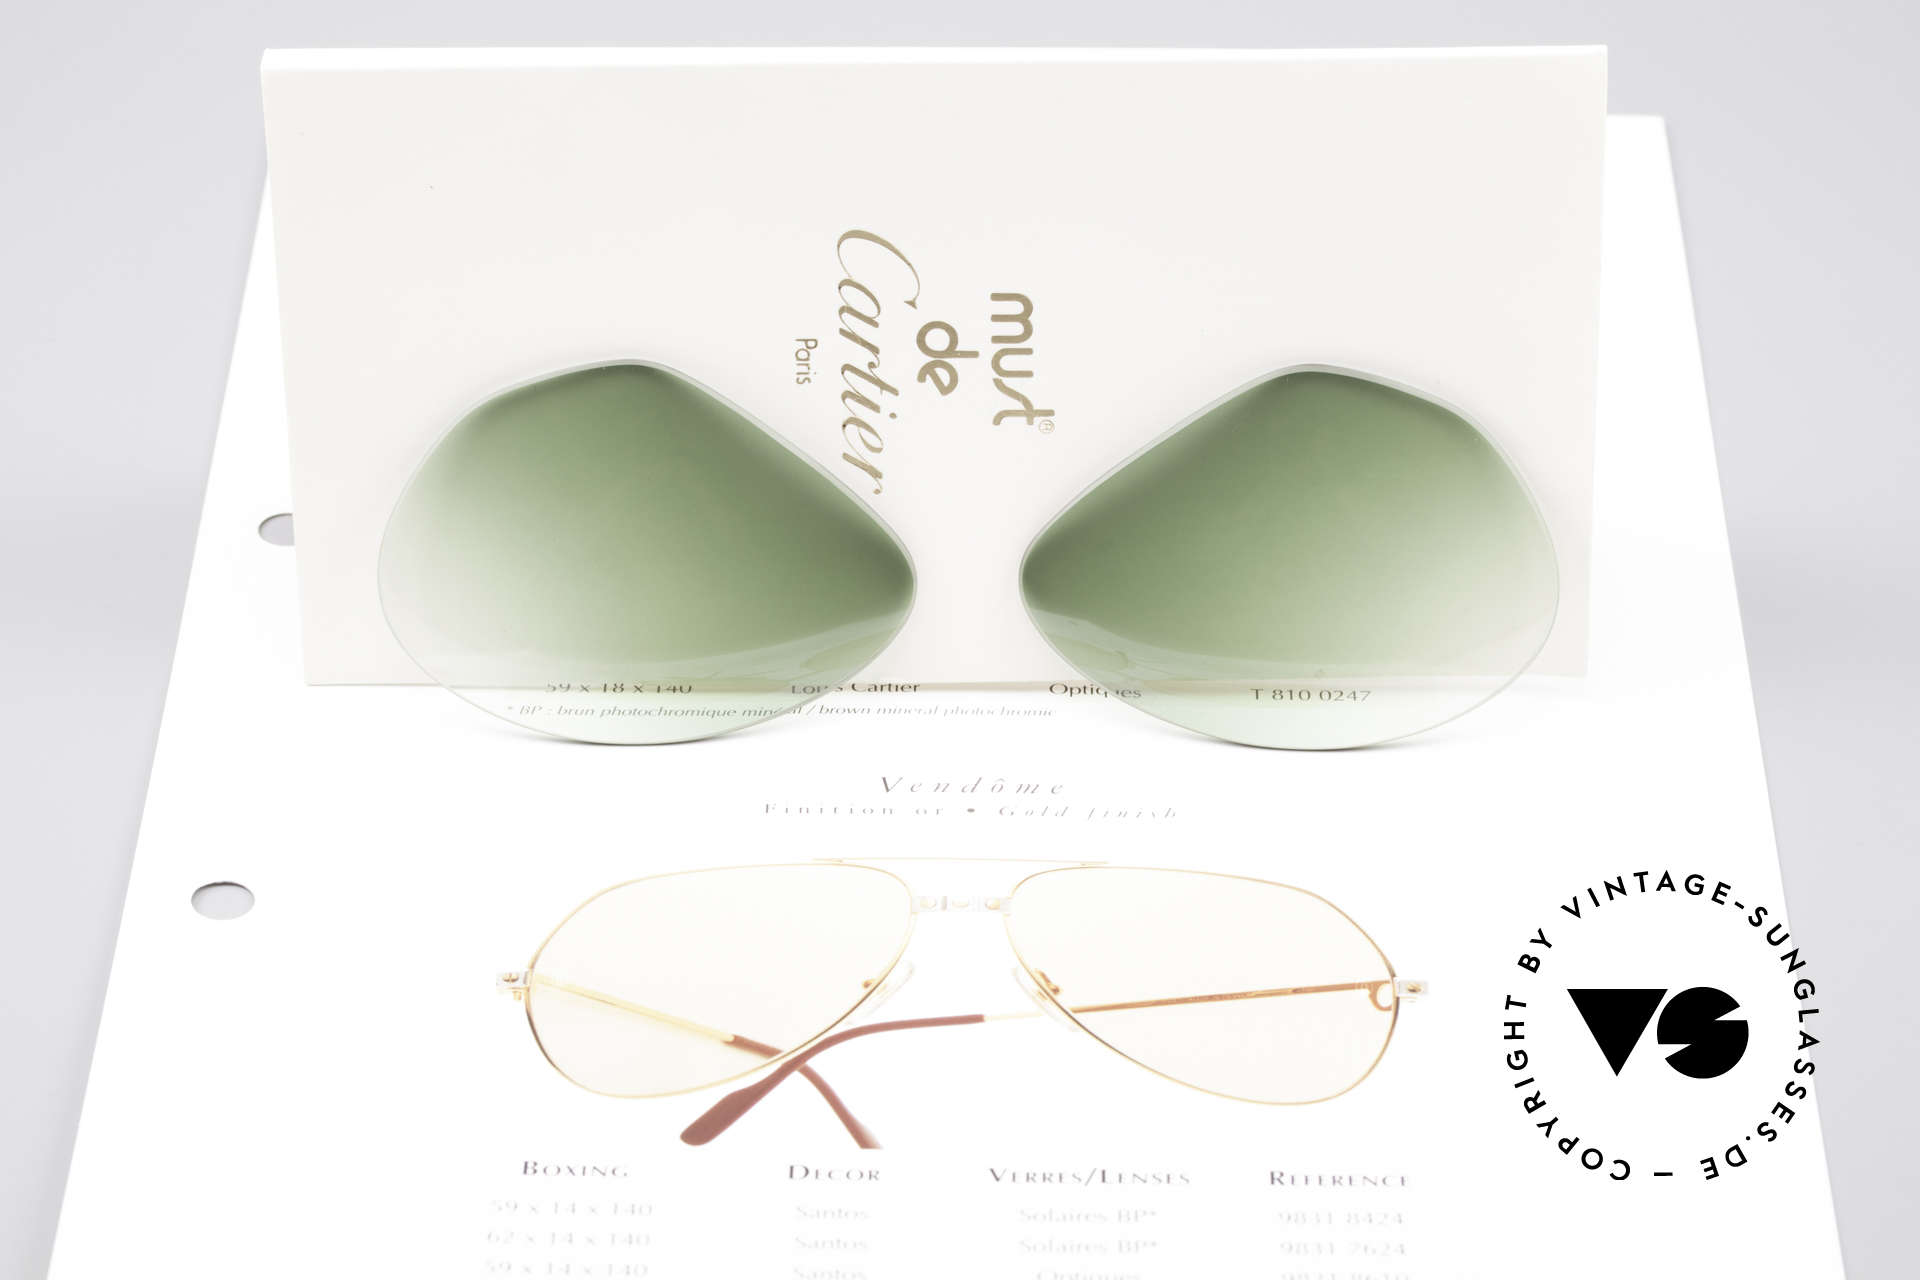 Cartier Vendome Lenses - L Green Gradient Sun Lenses, elegant green-gradient tint (wearable at day and night), Made for Men